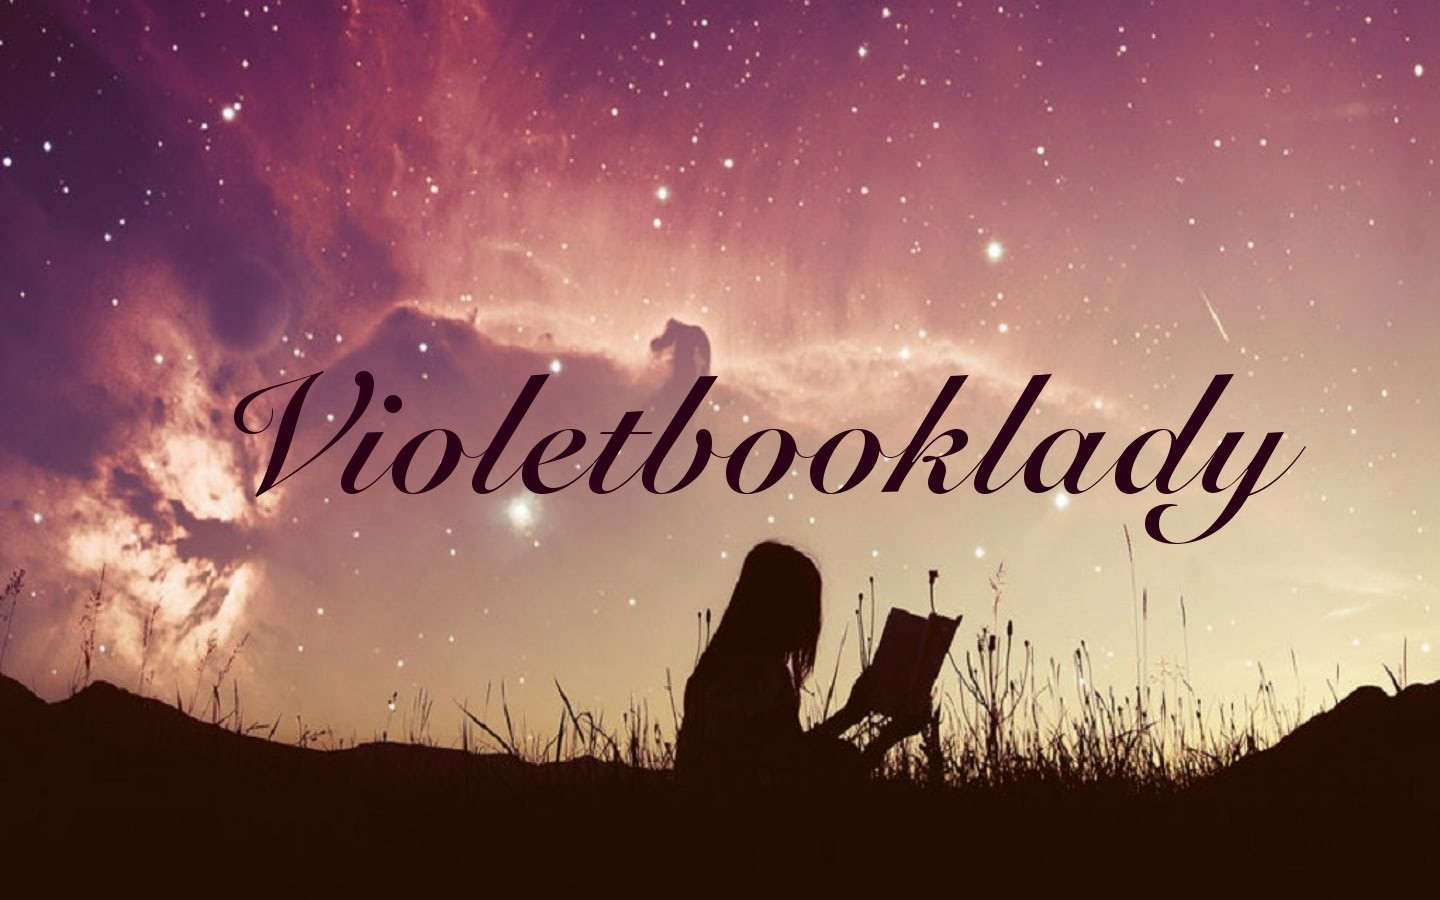 Violet Booklady